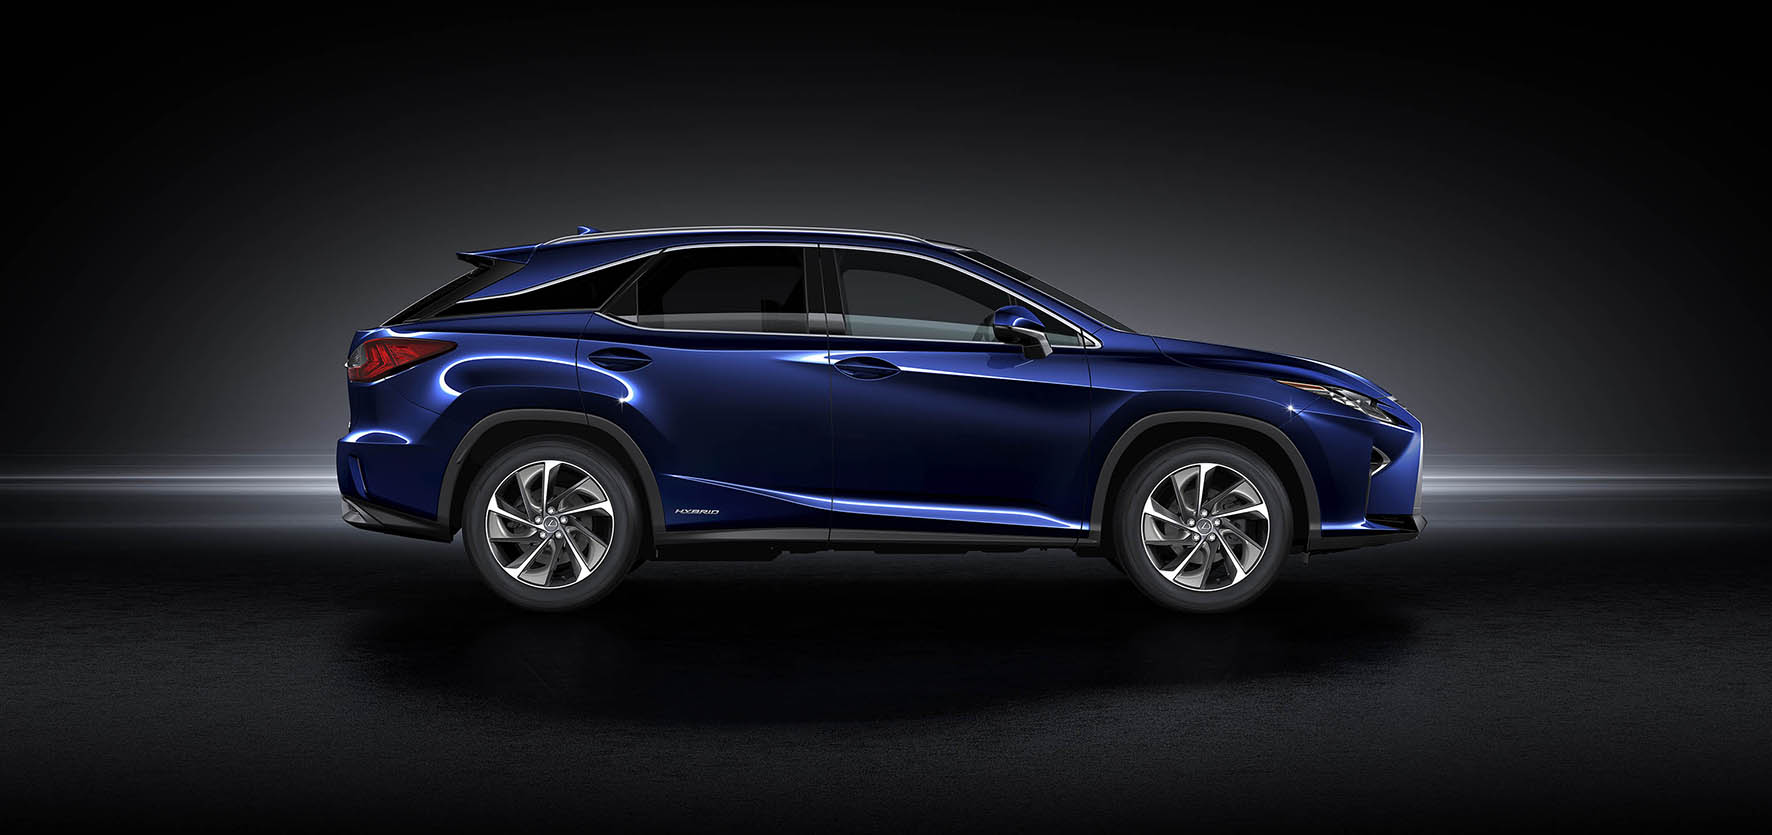 lexus rx 450h beleeft europees debuut op de iaa drivessential. Black Bedroom Furniture Sets. Home Design Ideas